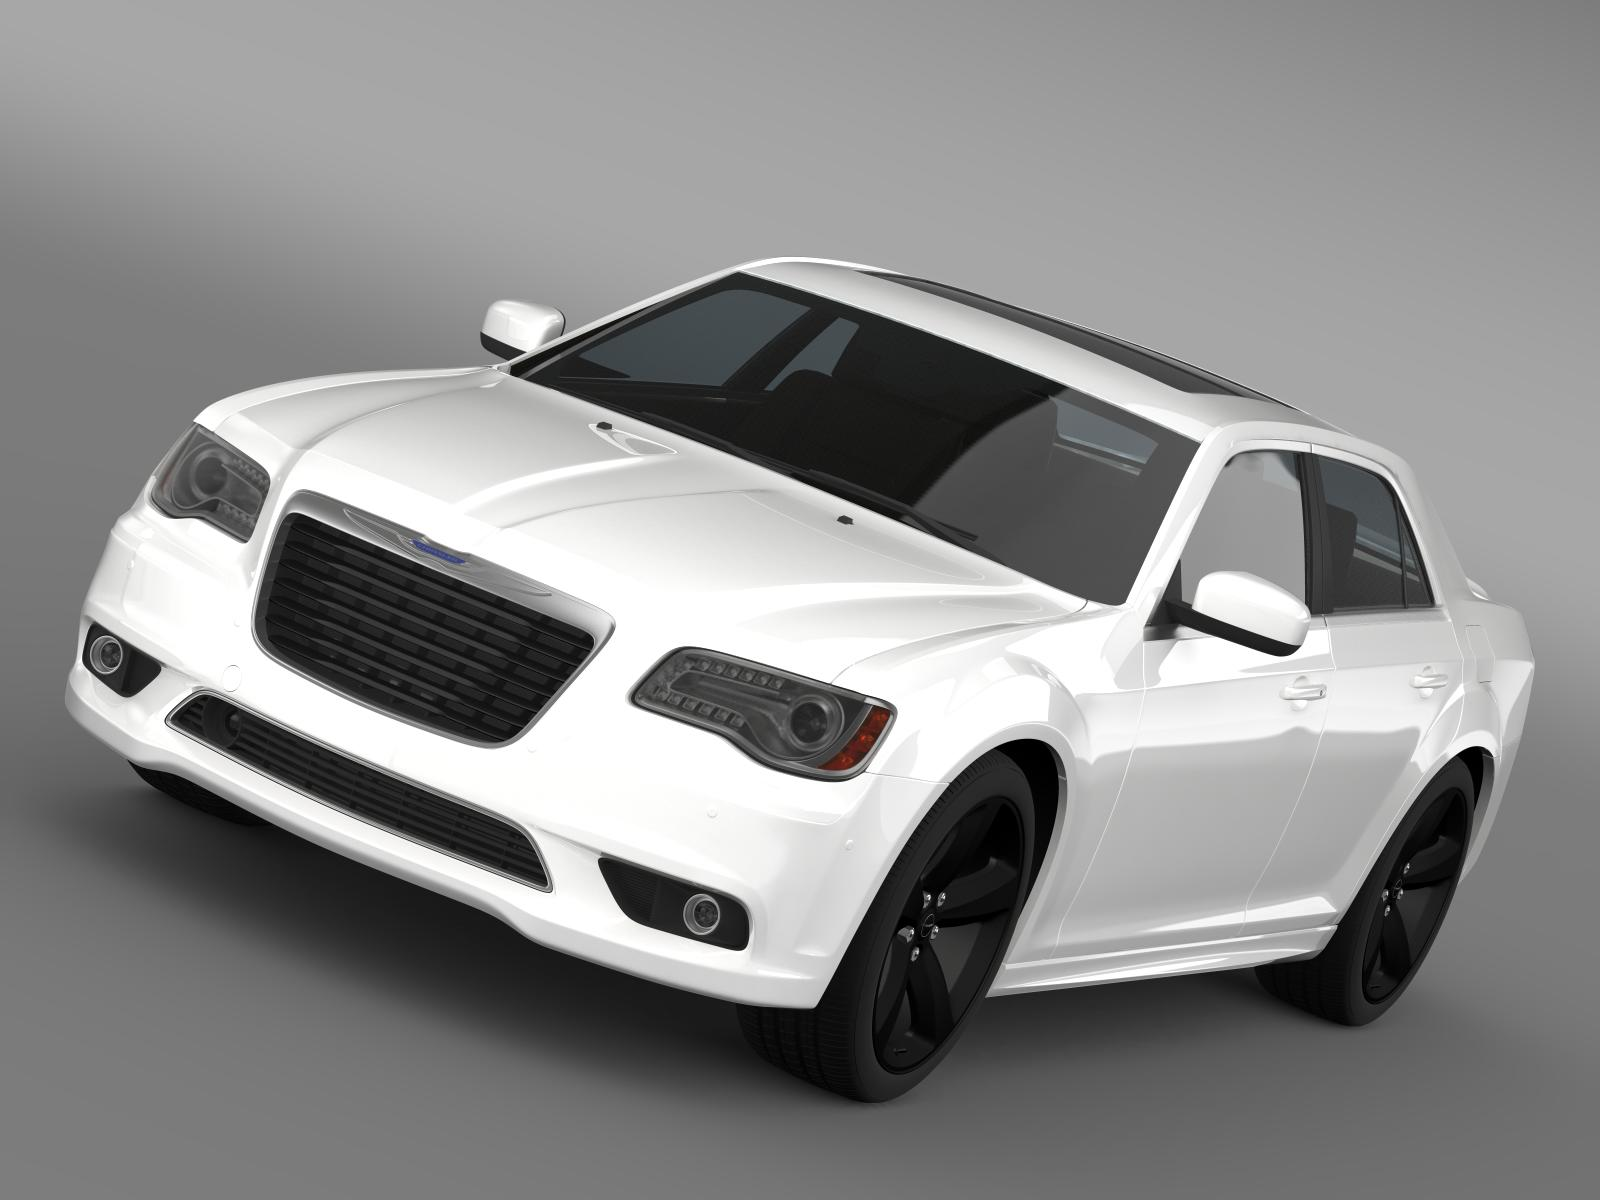 chrysler 300s 2013 3d model 3ds max fbx c4d lwo ma mb hrc xsi obj 207976